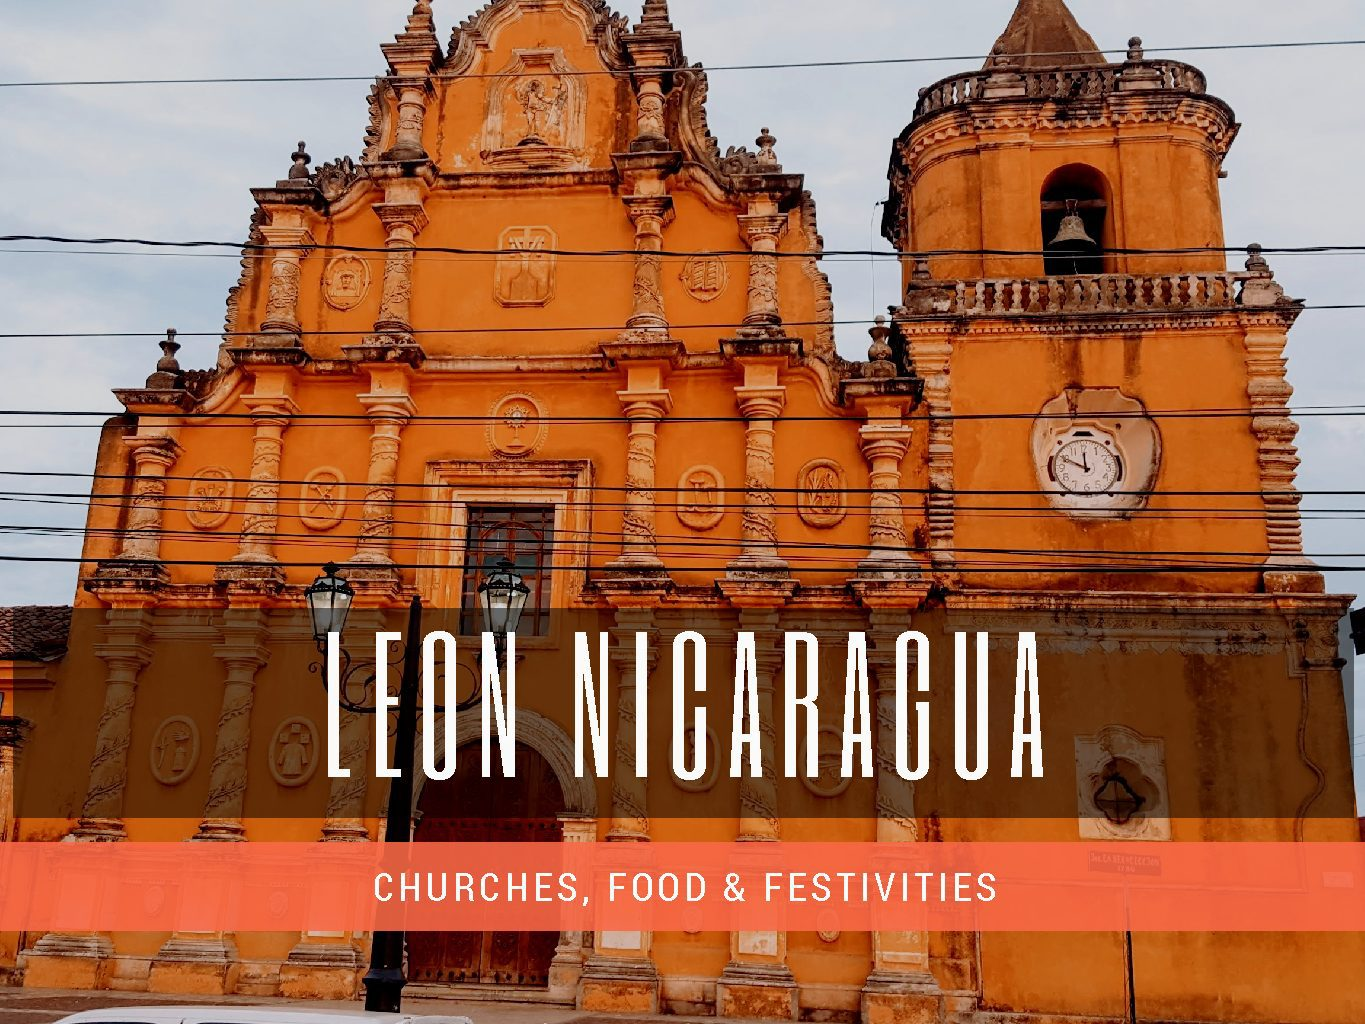 Where to Stay in Leon Nicaragua?